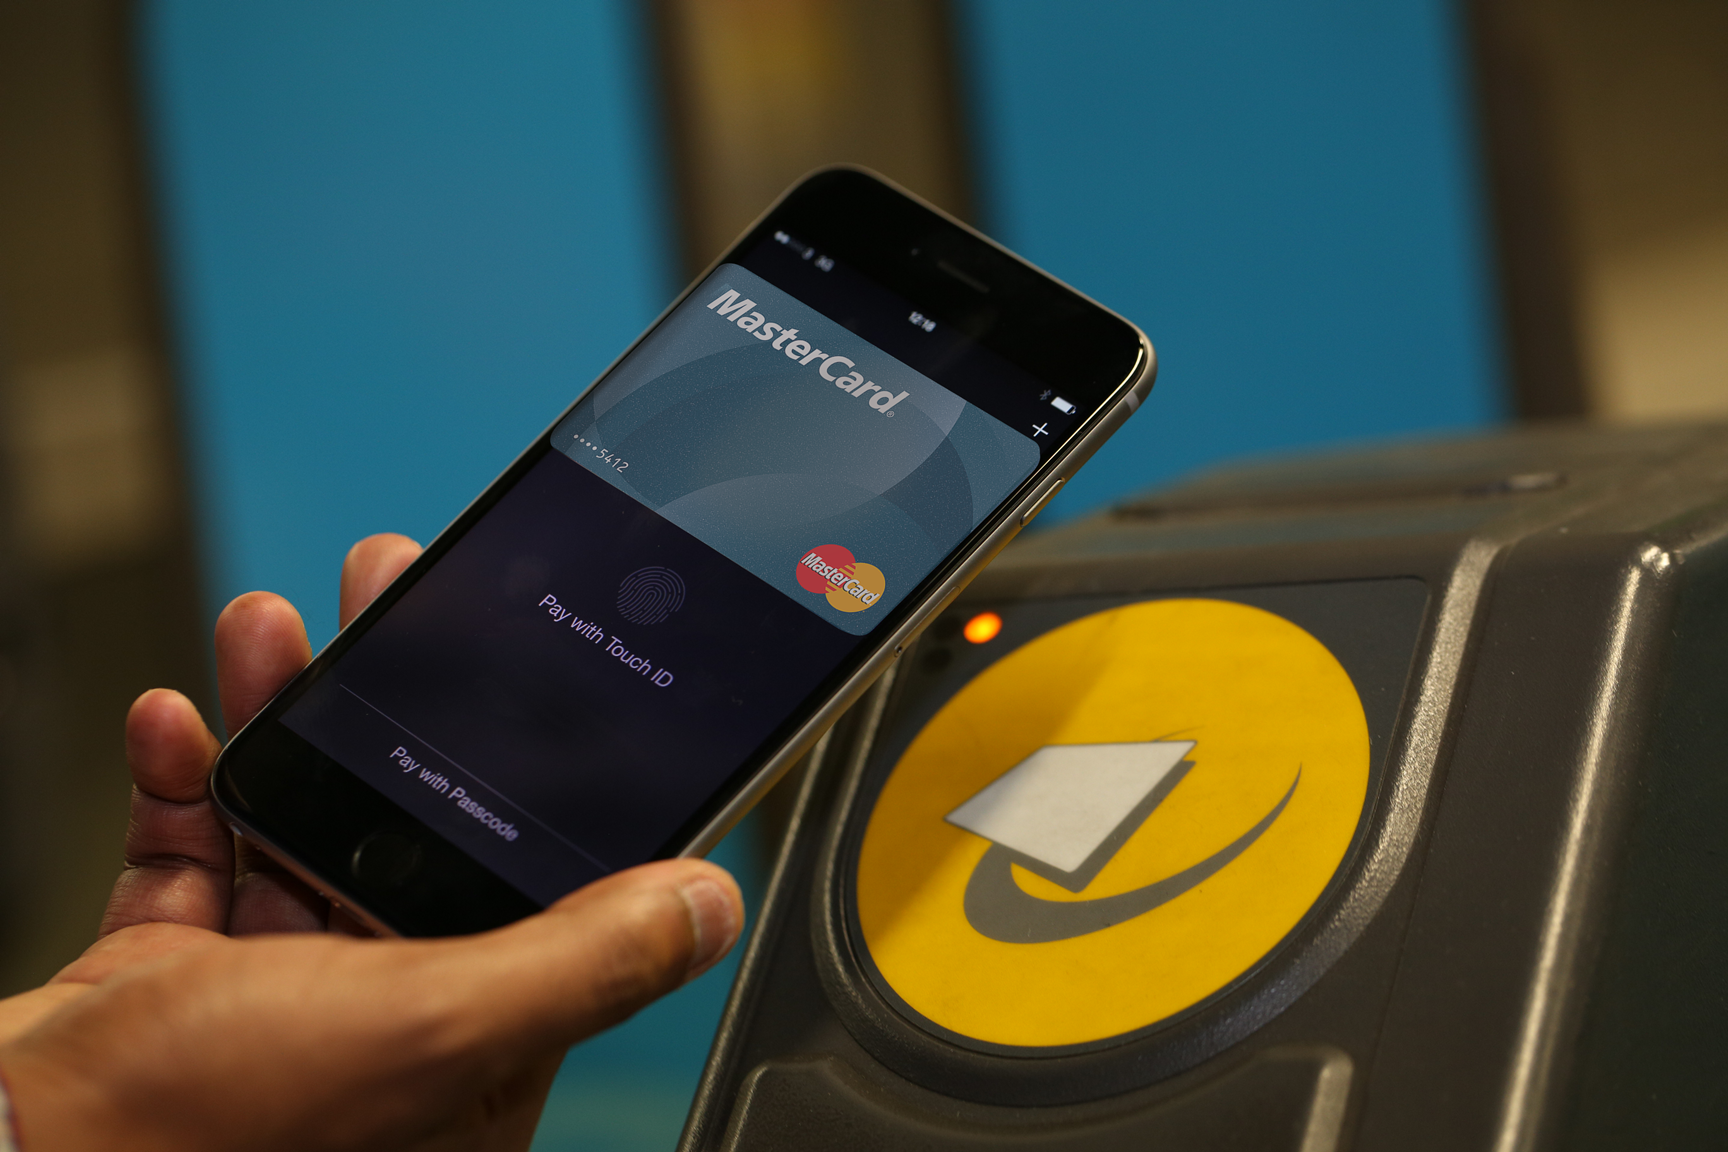 Apple Pay in use